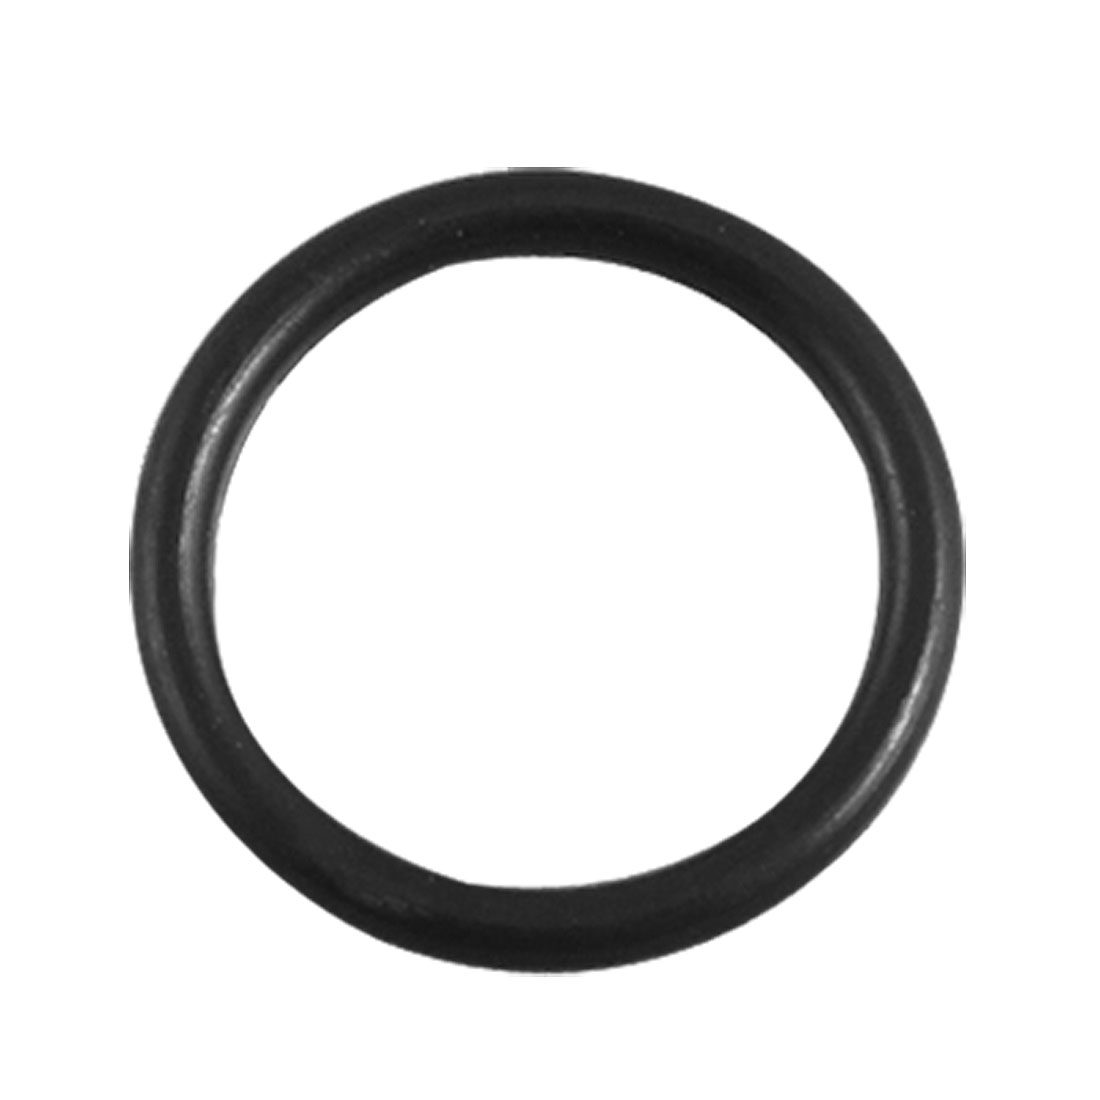 14 x 1.5mm Black Rubber O Type Sealing Ring Gasket Grommets 50 Pcs